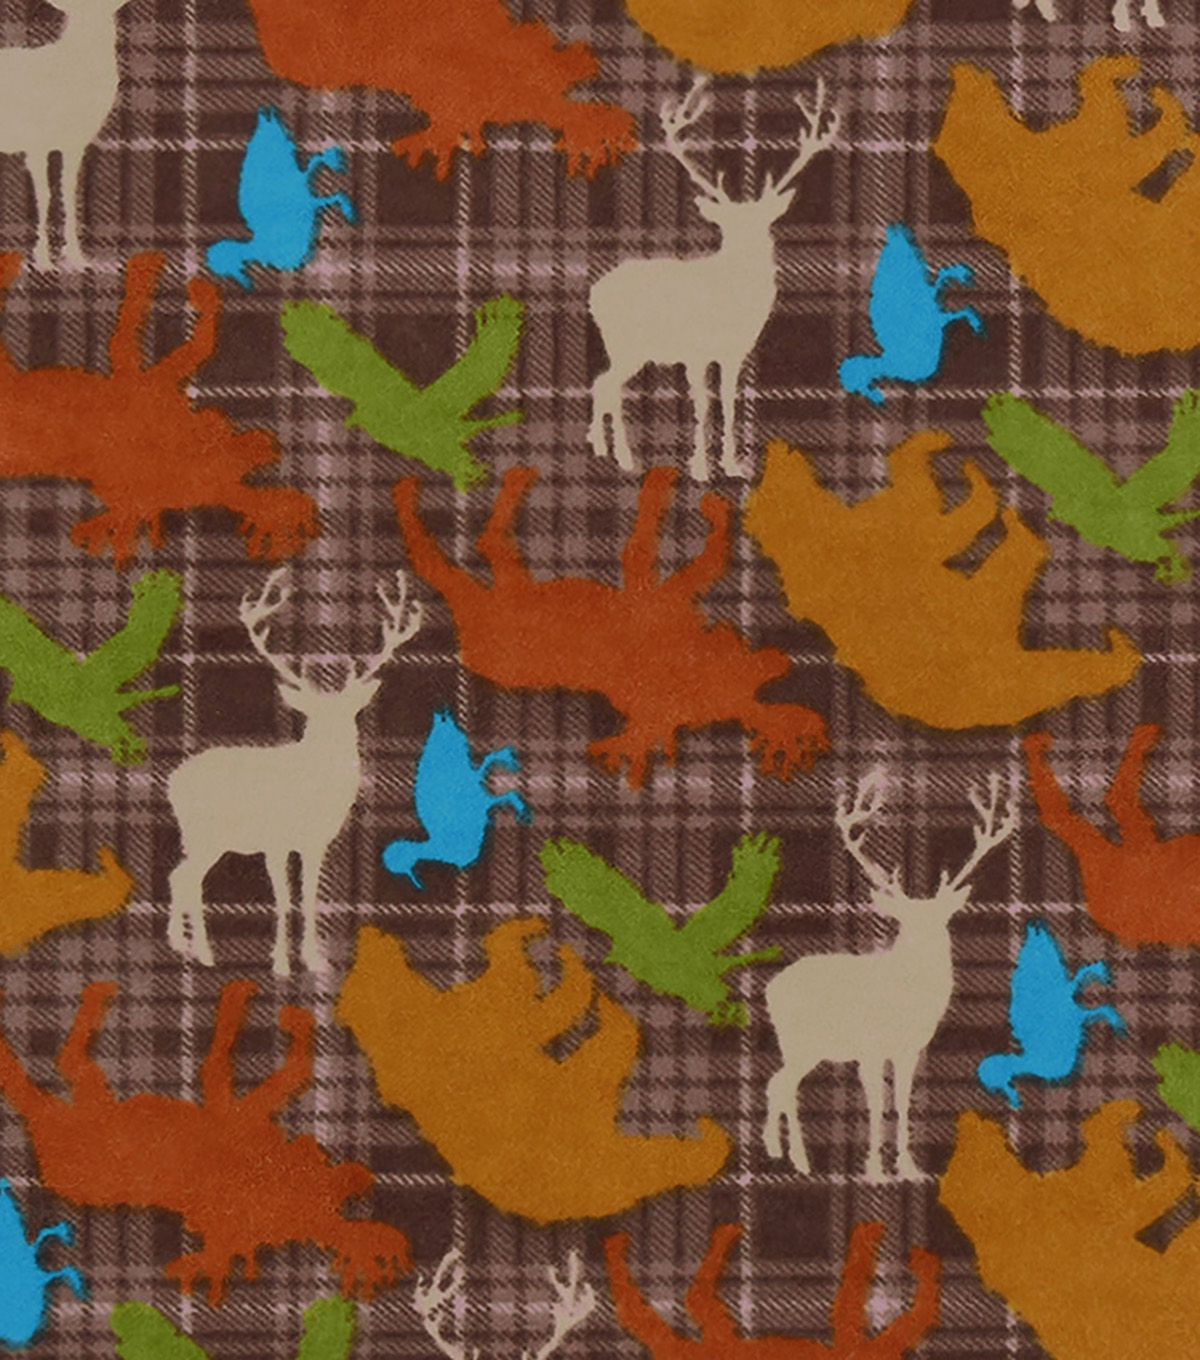 Cotton flannel fabric print 43 brown wilderness animals joann snuggle flannel fabric 43u0027u0027 brown wilderness animals tossed gumiabroncs Image collections